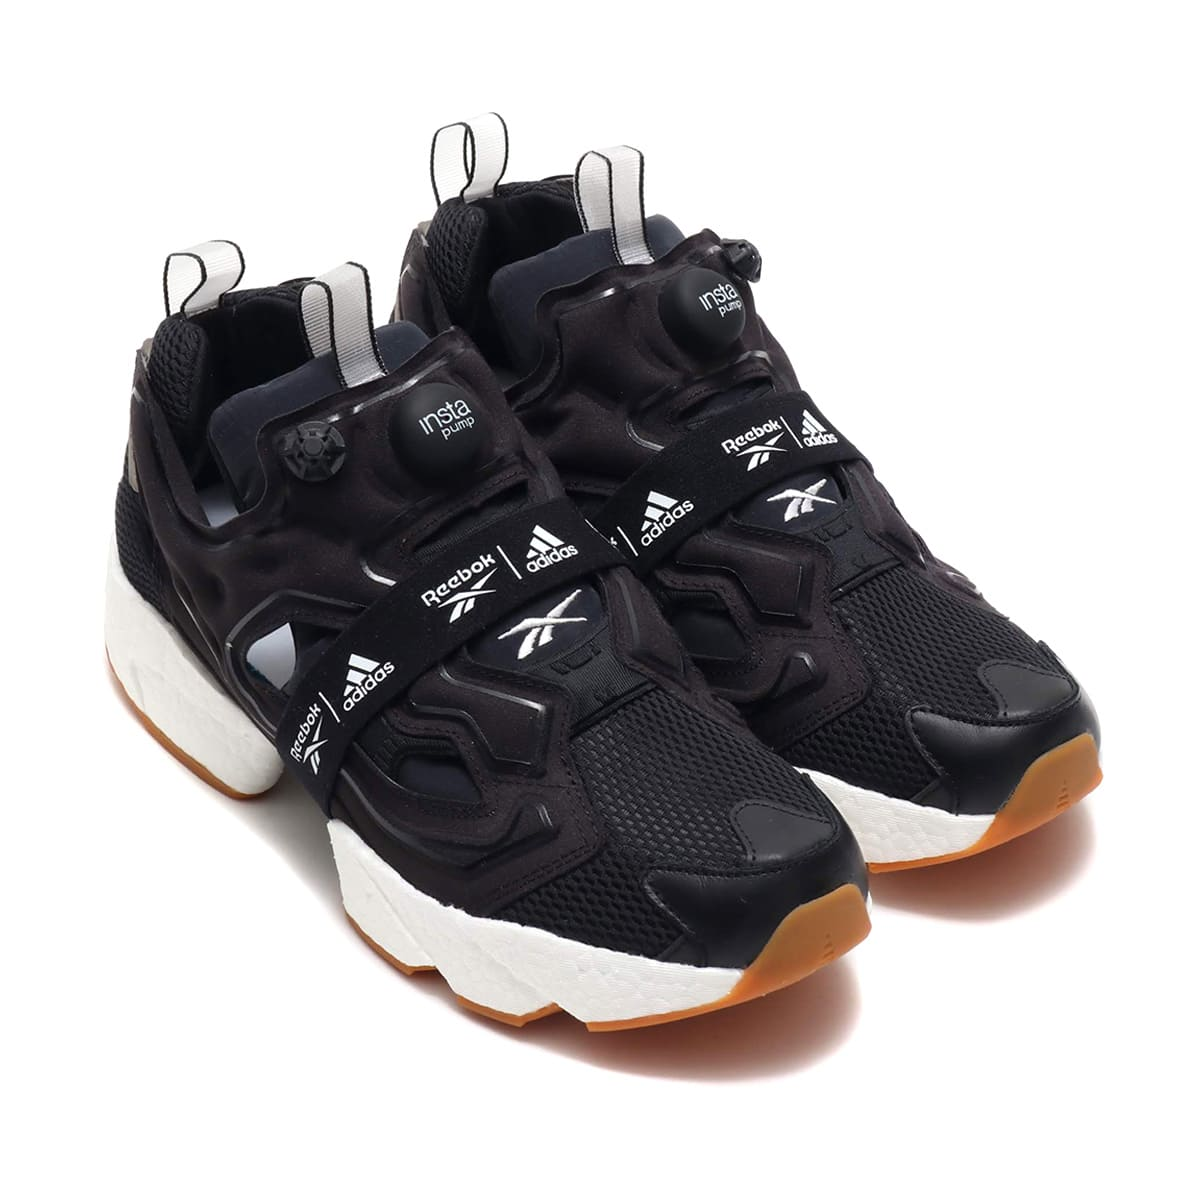 Reebok INSTAPUMP FURY BOOST BLACK/WHITE/REEBOK RUBBER GUM 19FW-S_photo_large